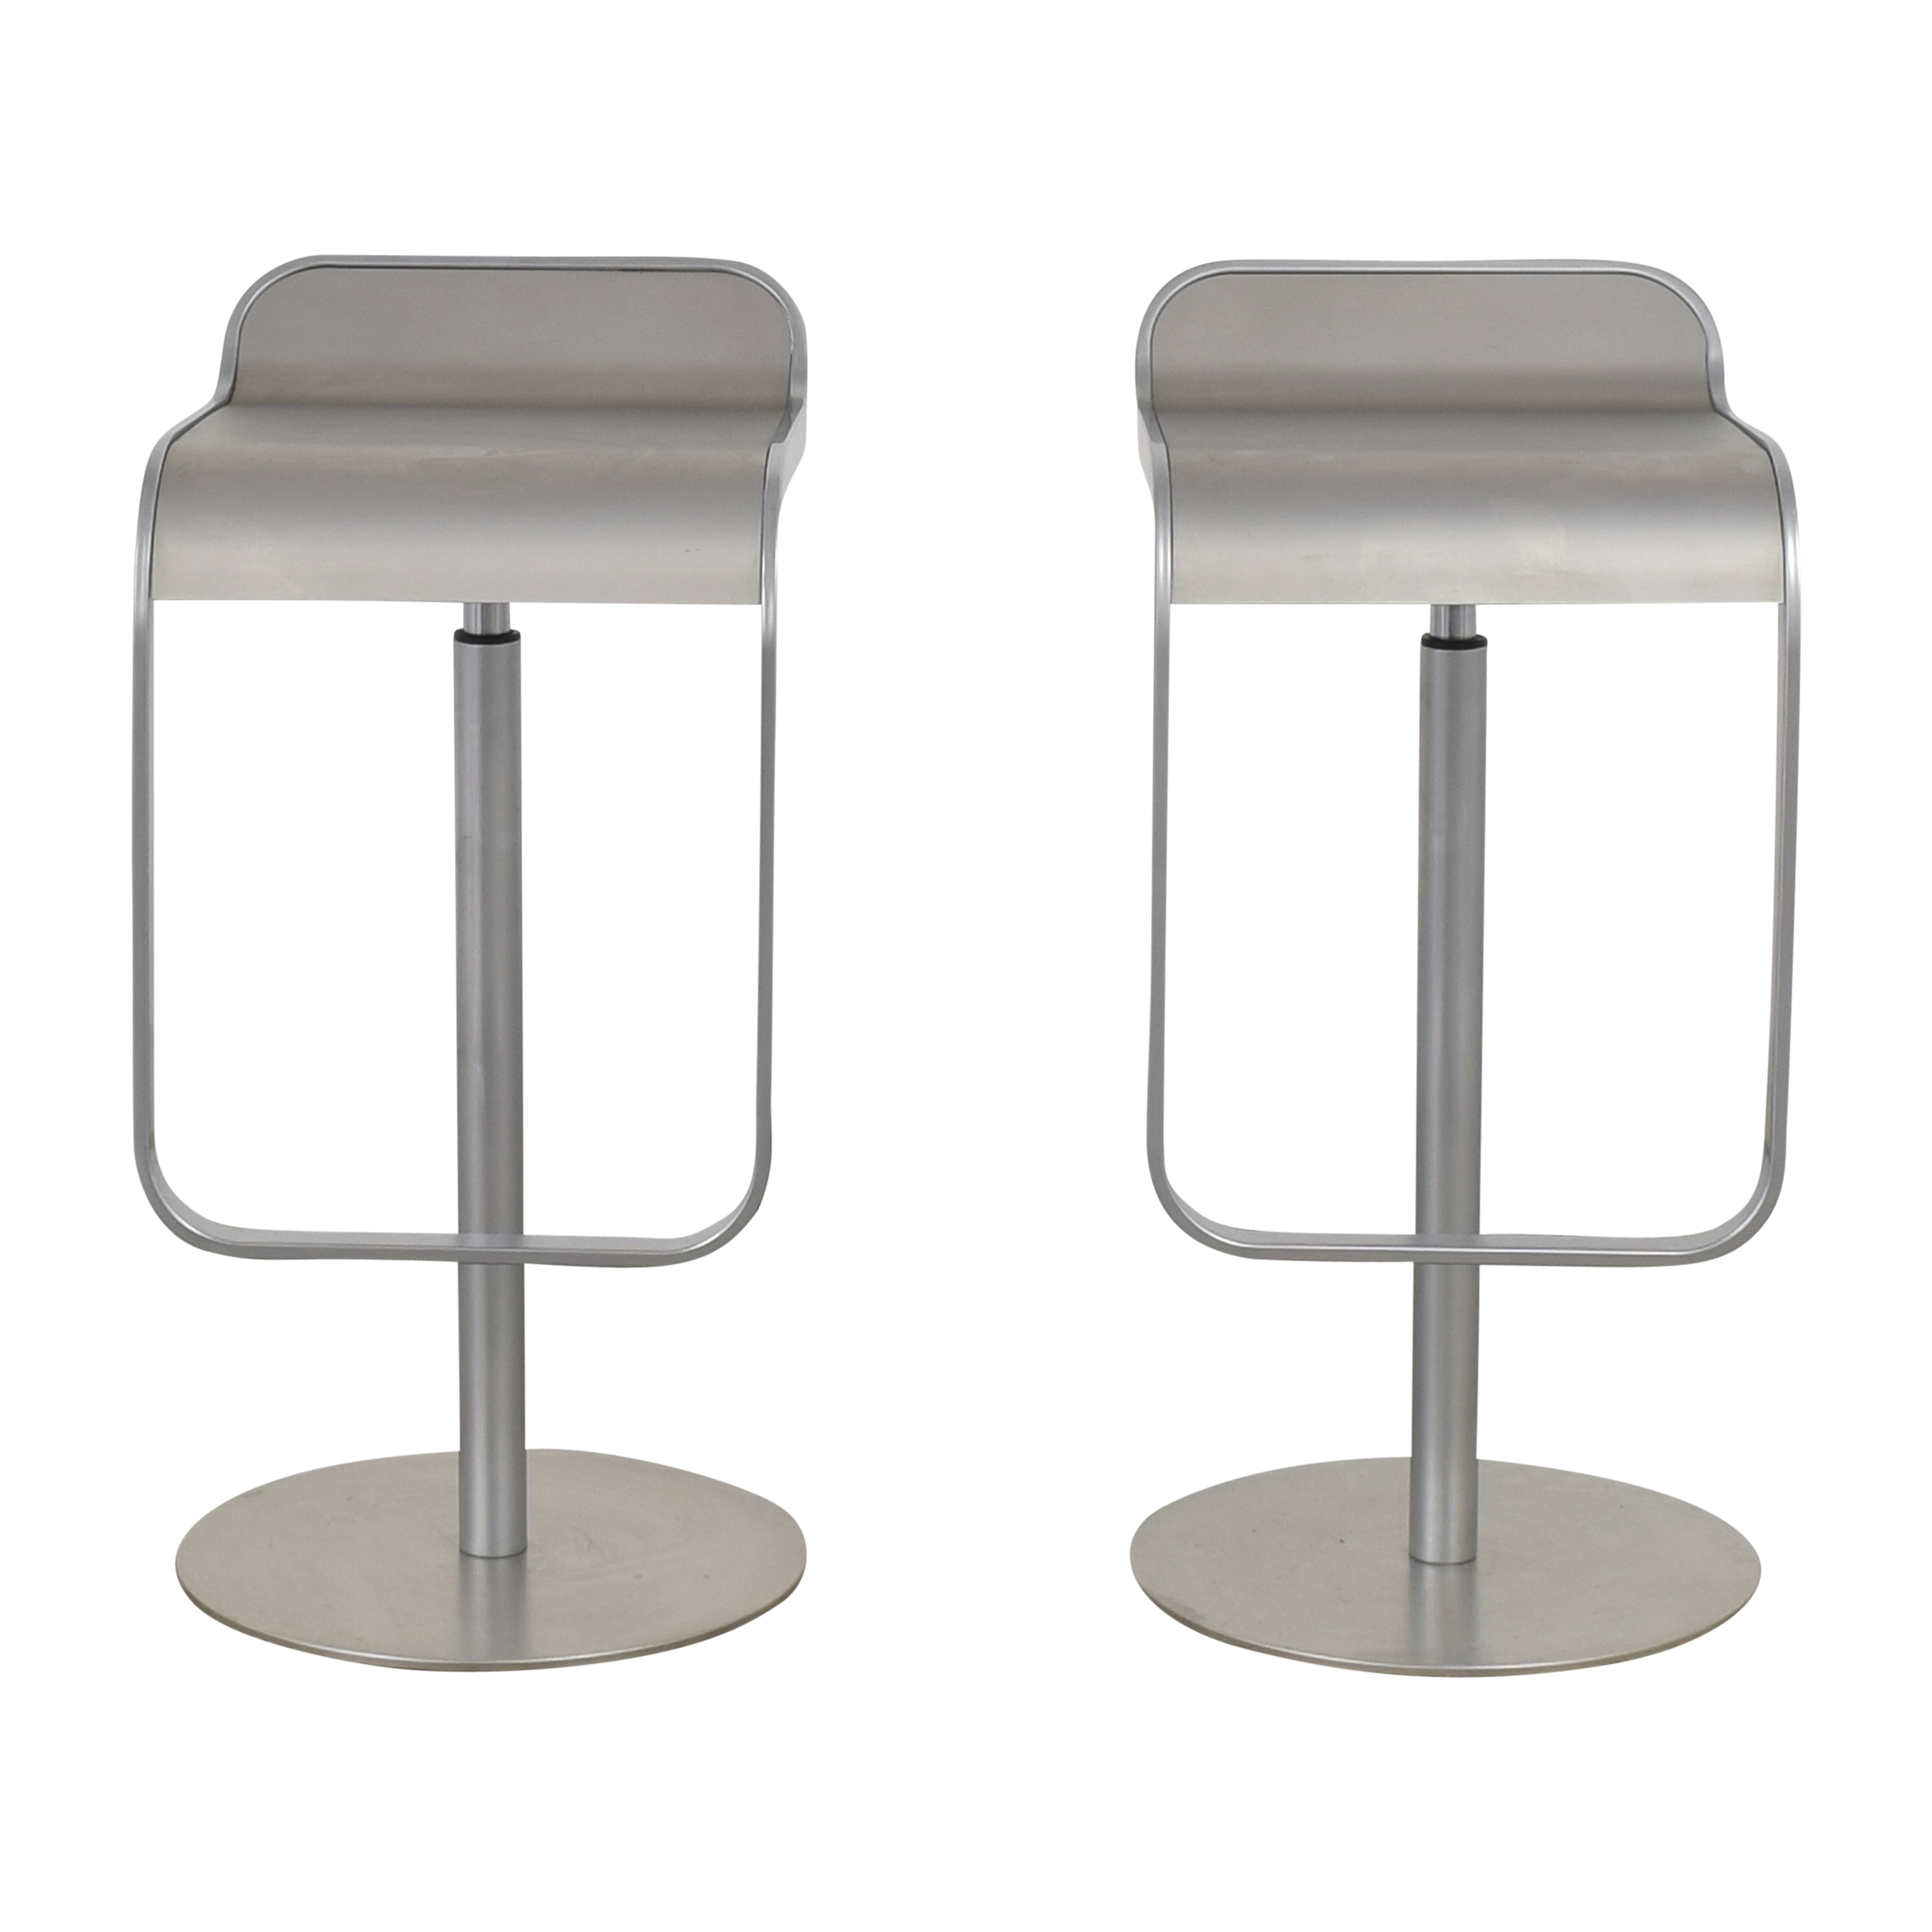 shop Design Within Reach Design Within Reach LEM Piston Stools by Lapalma online